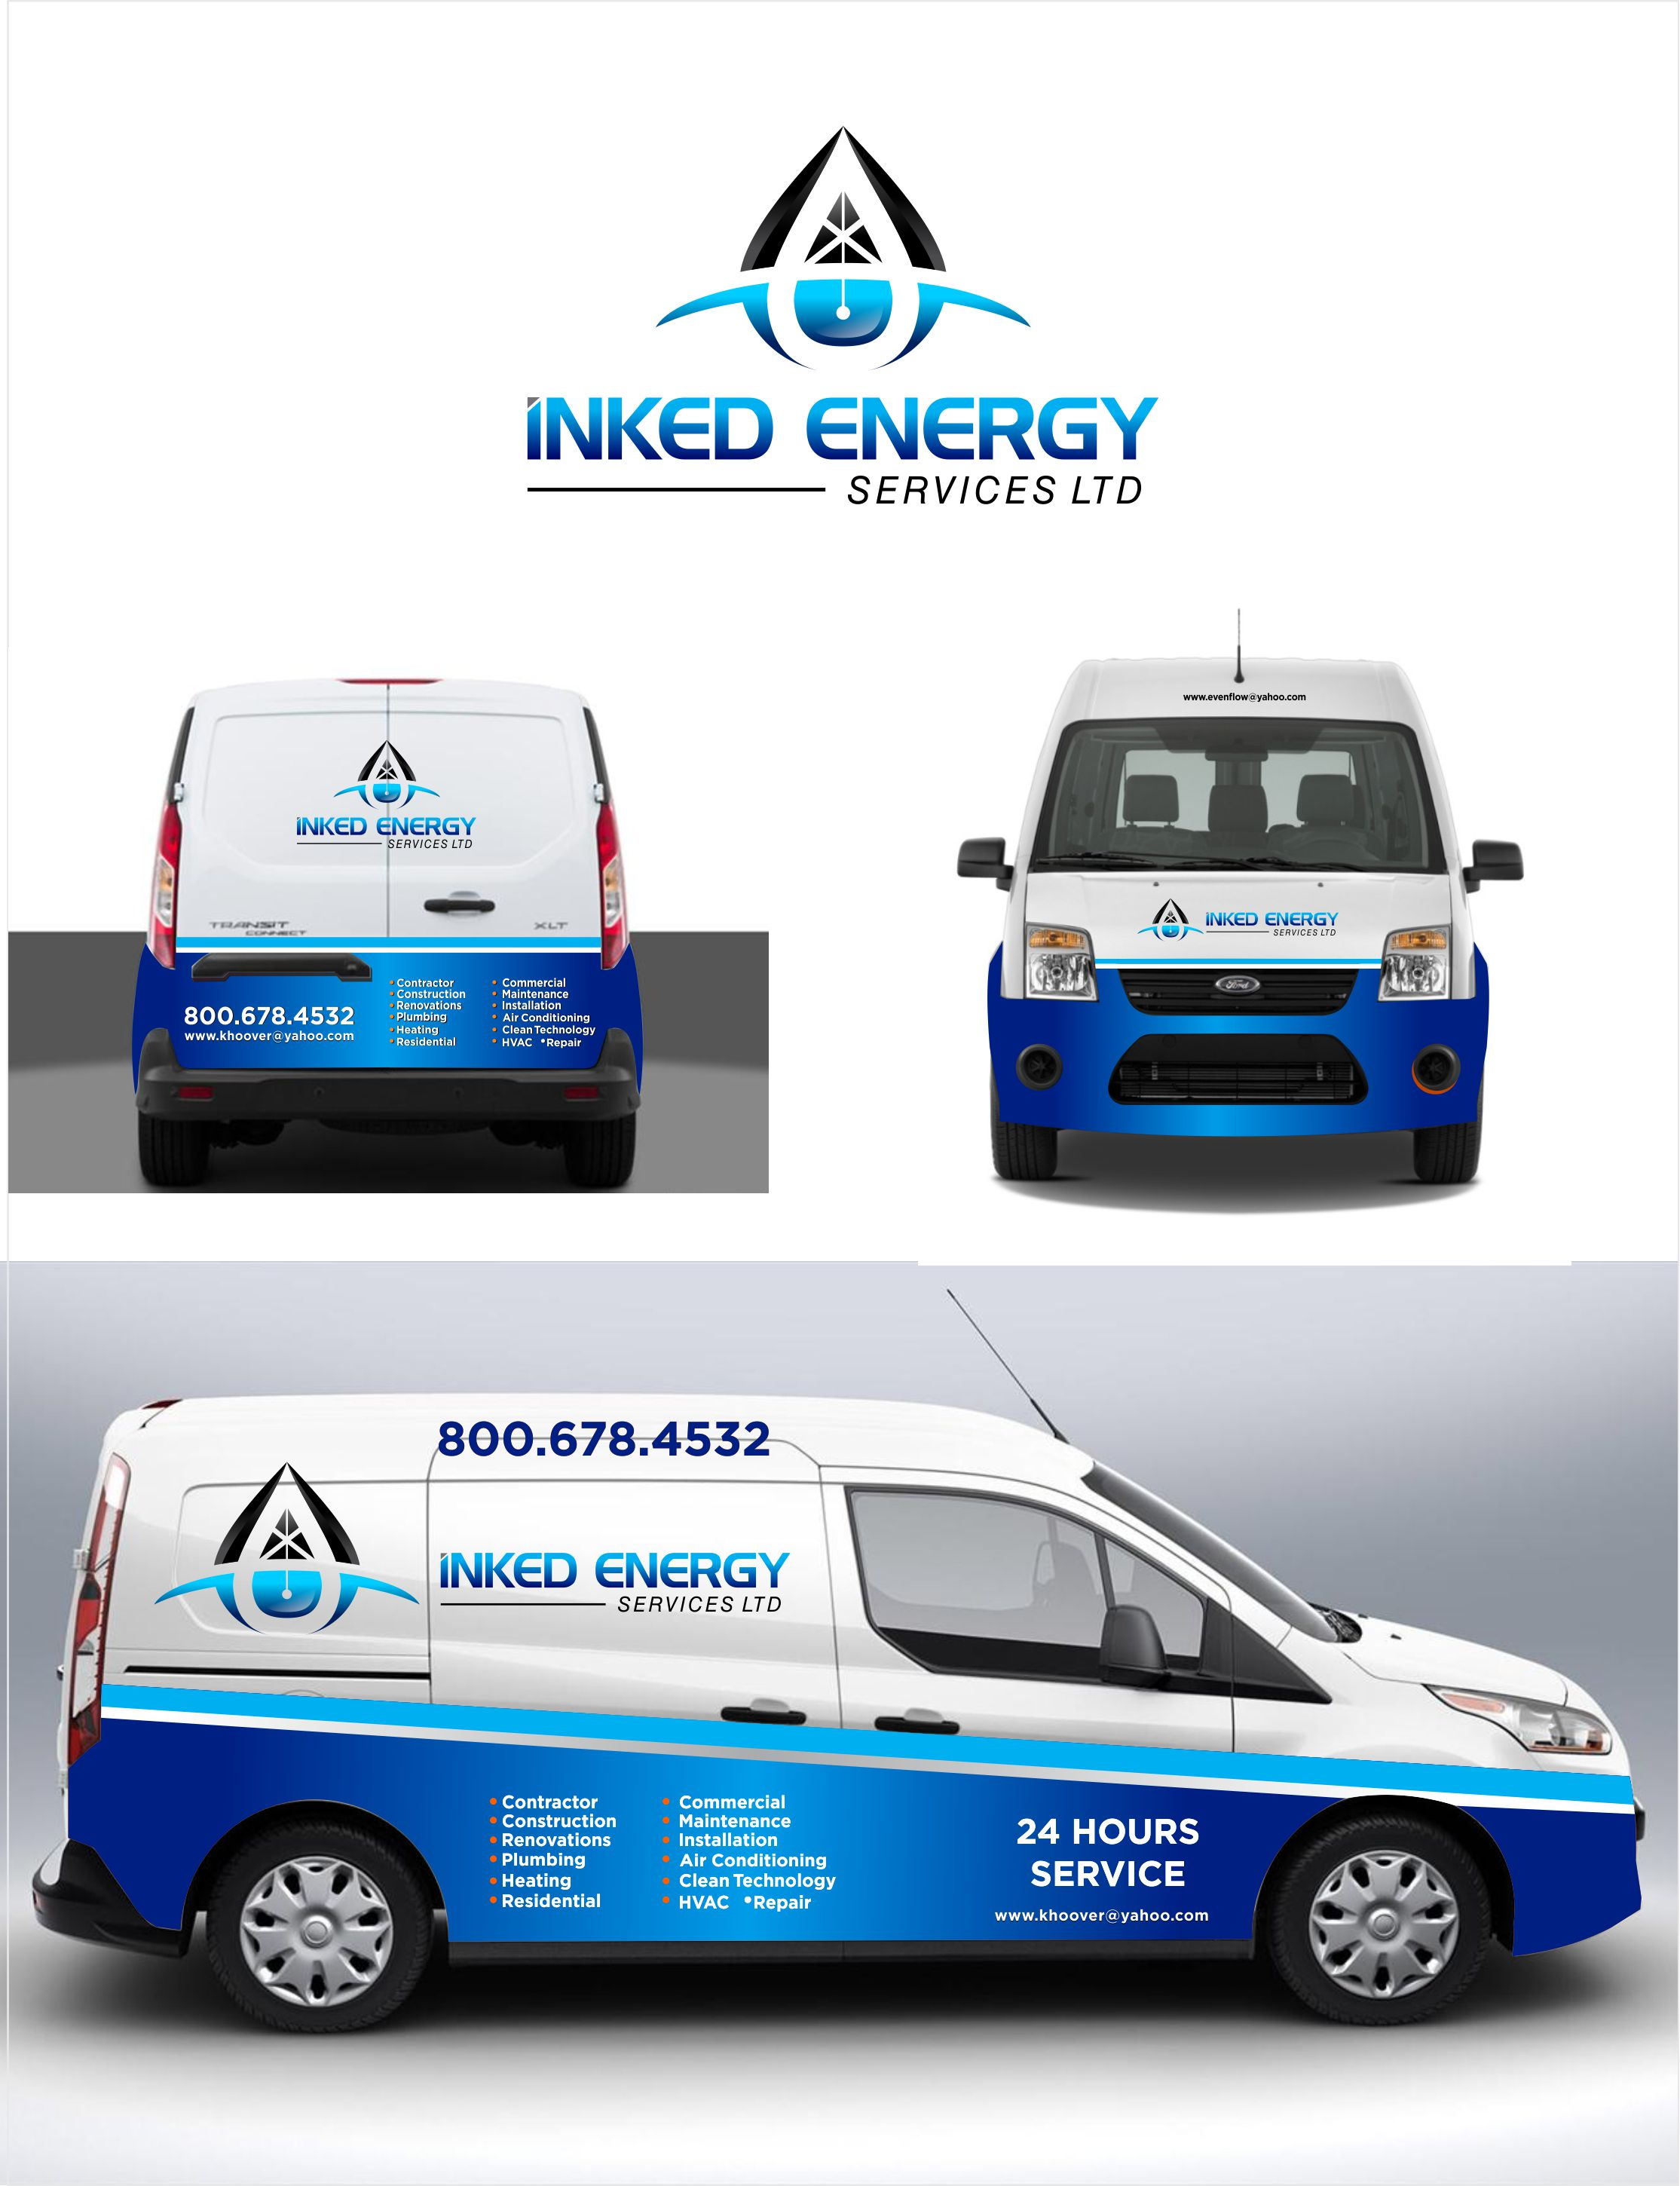 Logo Design by Raymond Garcia - Entry No. 168 in the Logo Design Contest Creative Logo Design for INKED ENERGY SERVICES LTD.